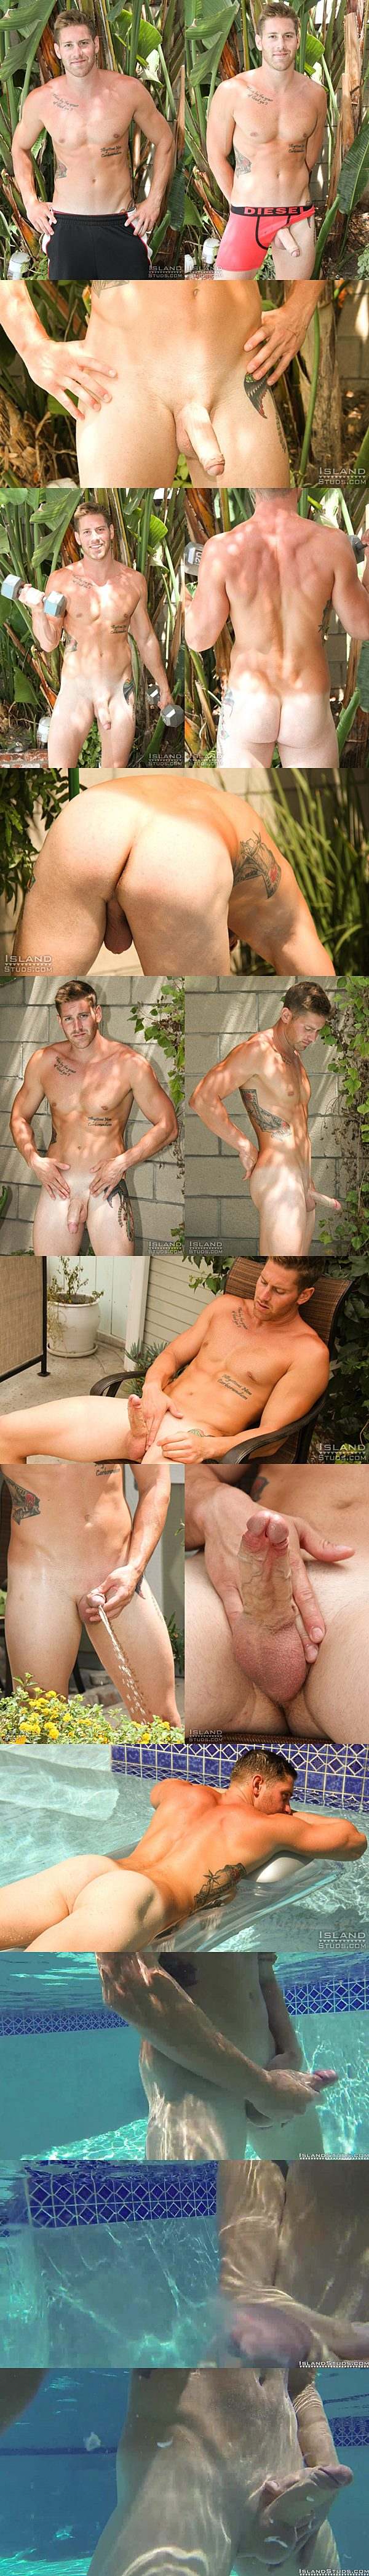 Handsome Hawaii college jock uncut big-dicked Troy shoots his thick cum underwater at Islandstuds 02